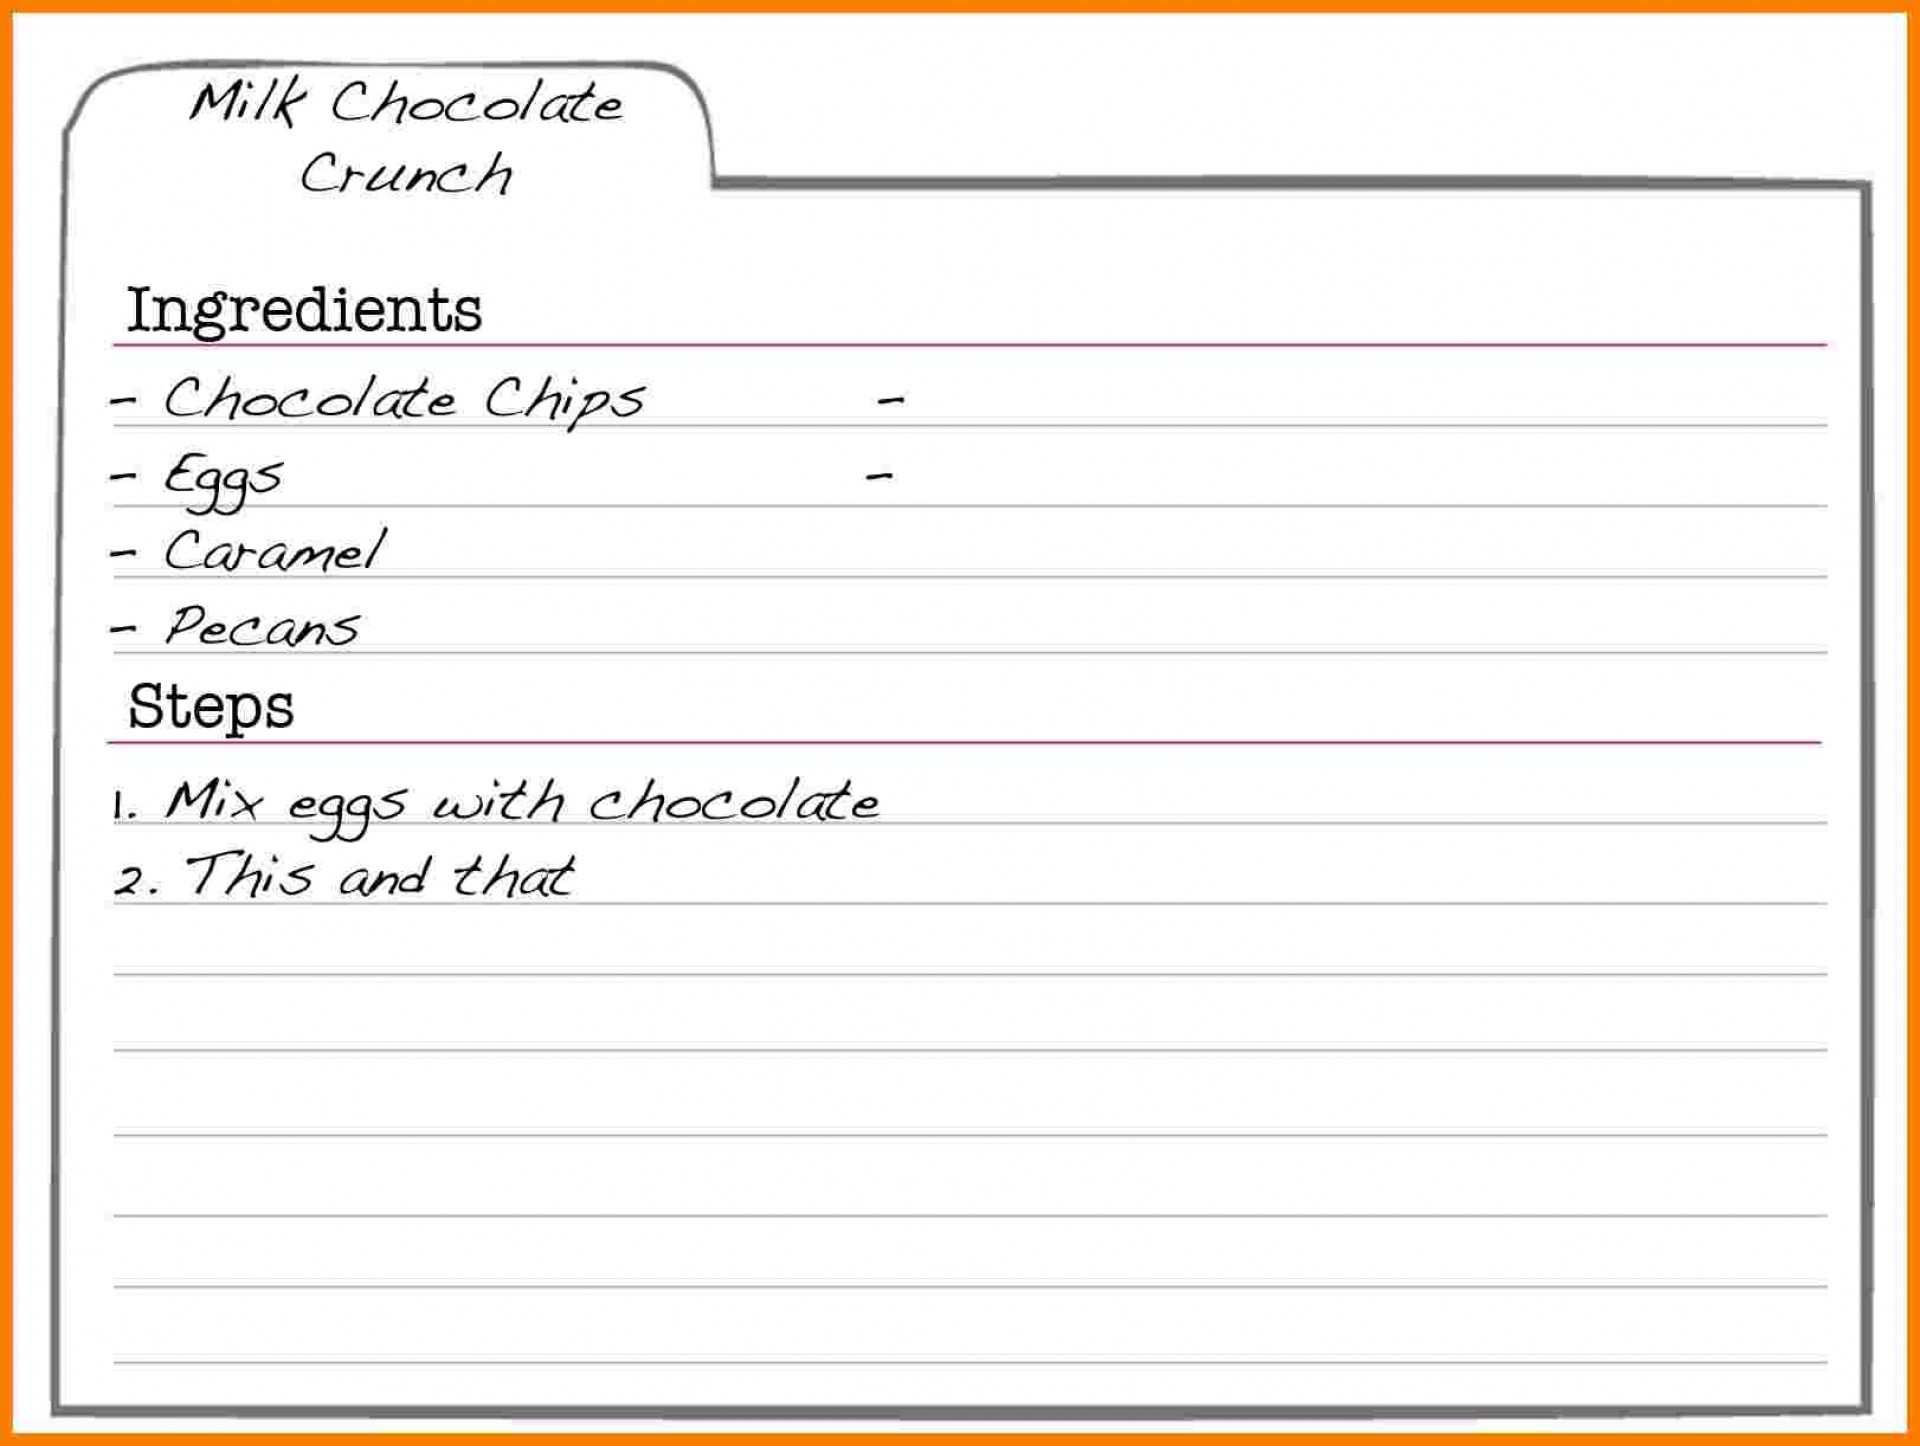 002 Incredible Free Recipe Template For Word Concept  Book Editable Card Microsoft 4x6 PageFull